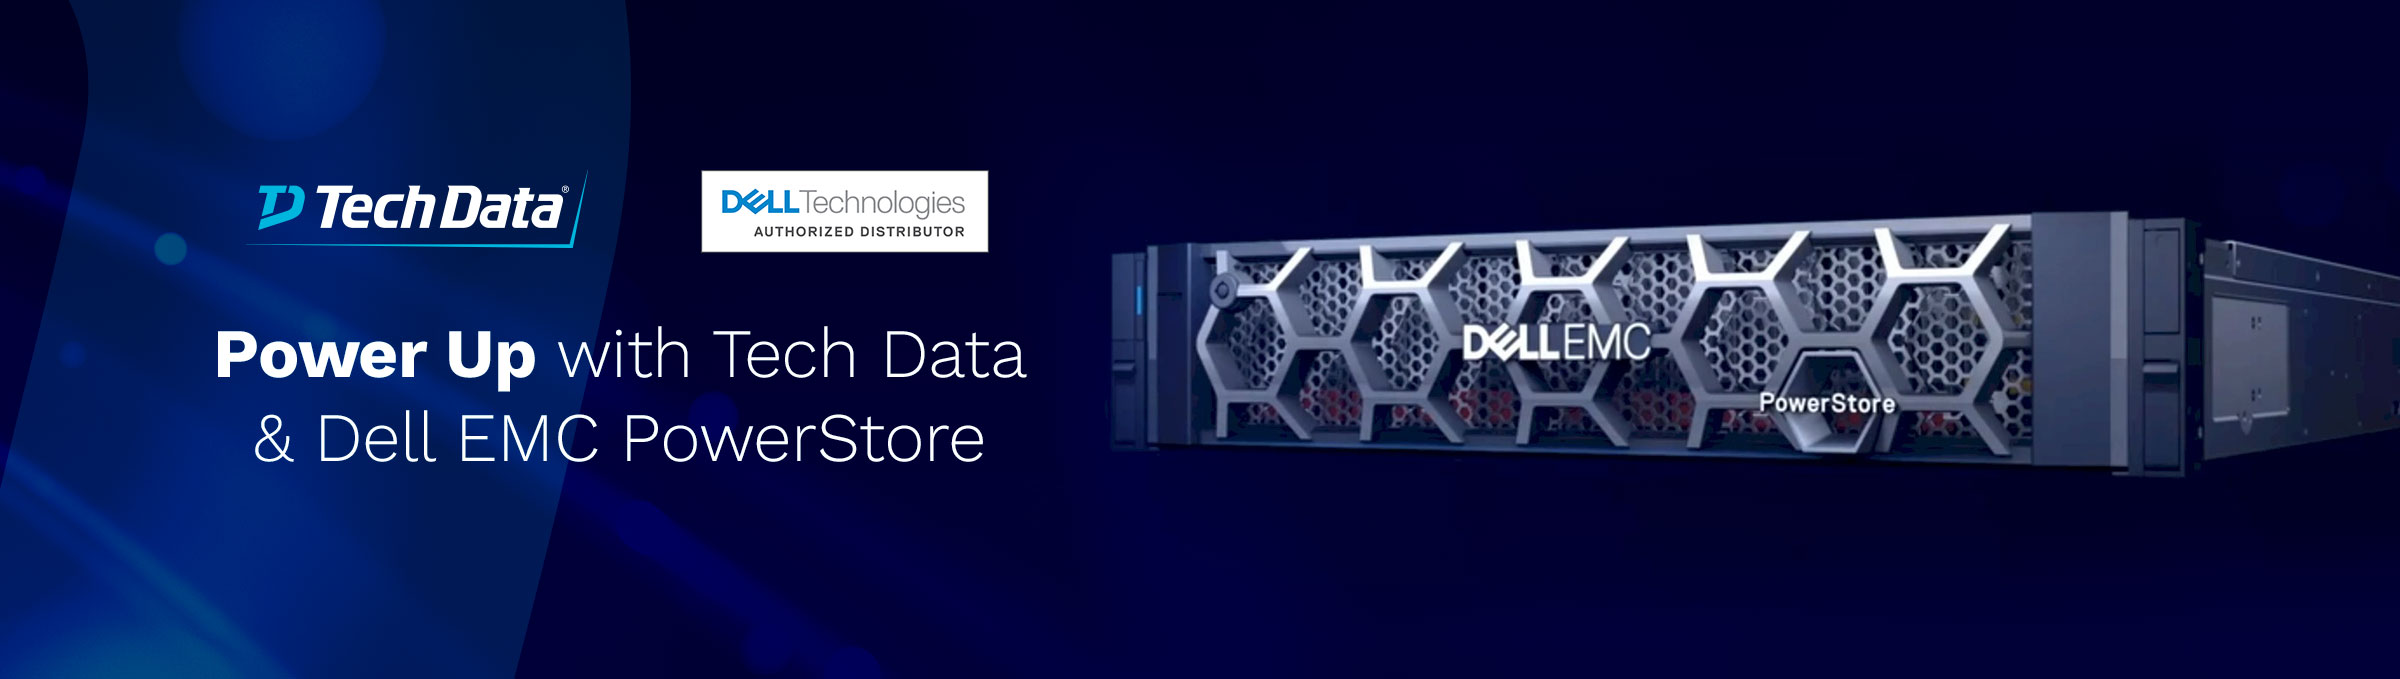 Dell_PowerStore_banner_2400